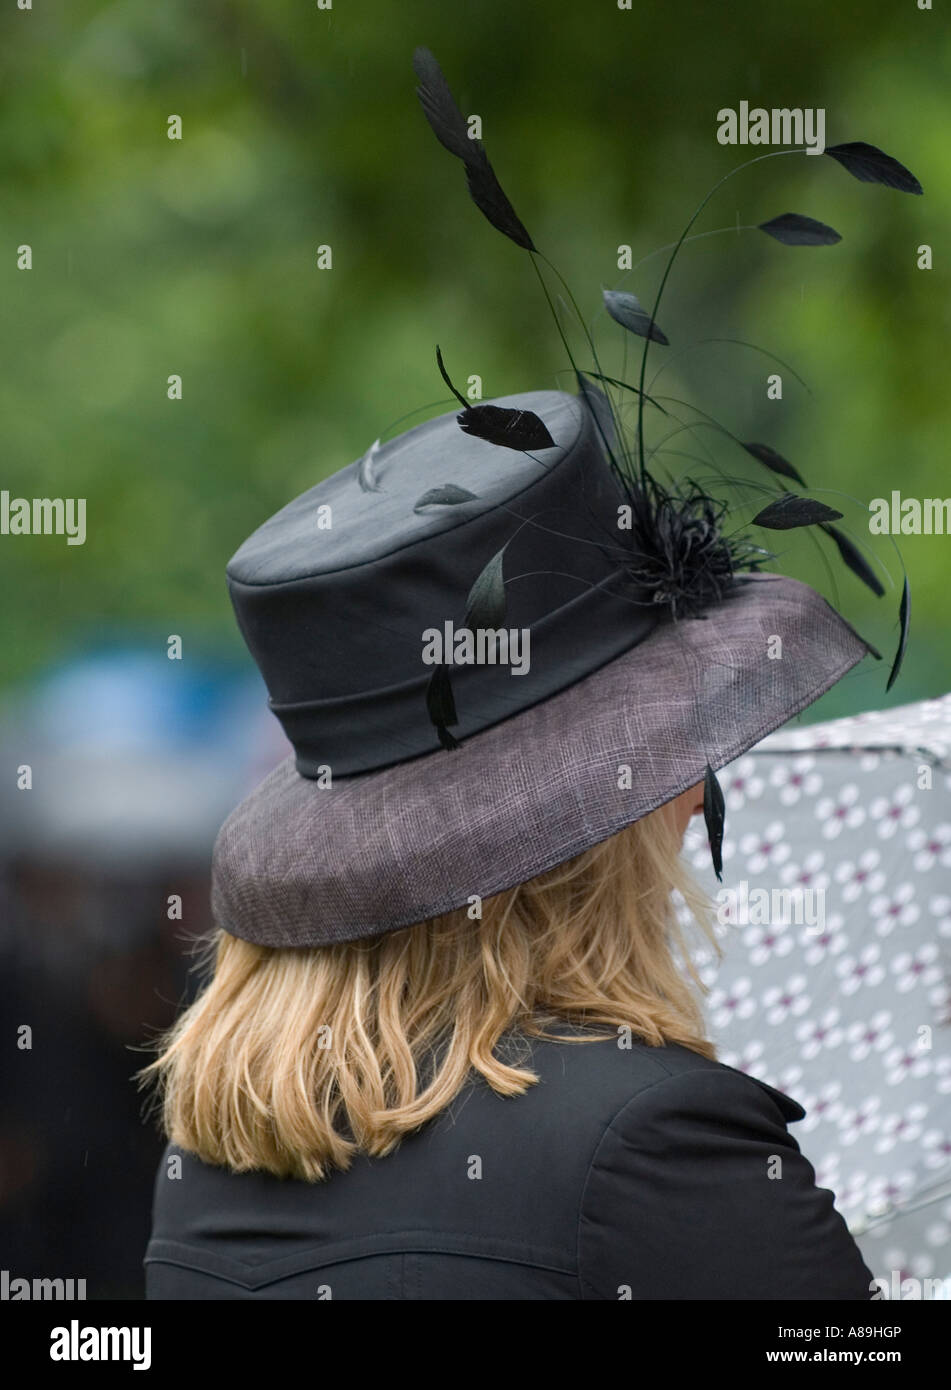 Blonde young woman wearing a black feathered hat - Stock Image